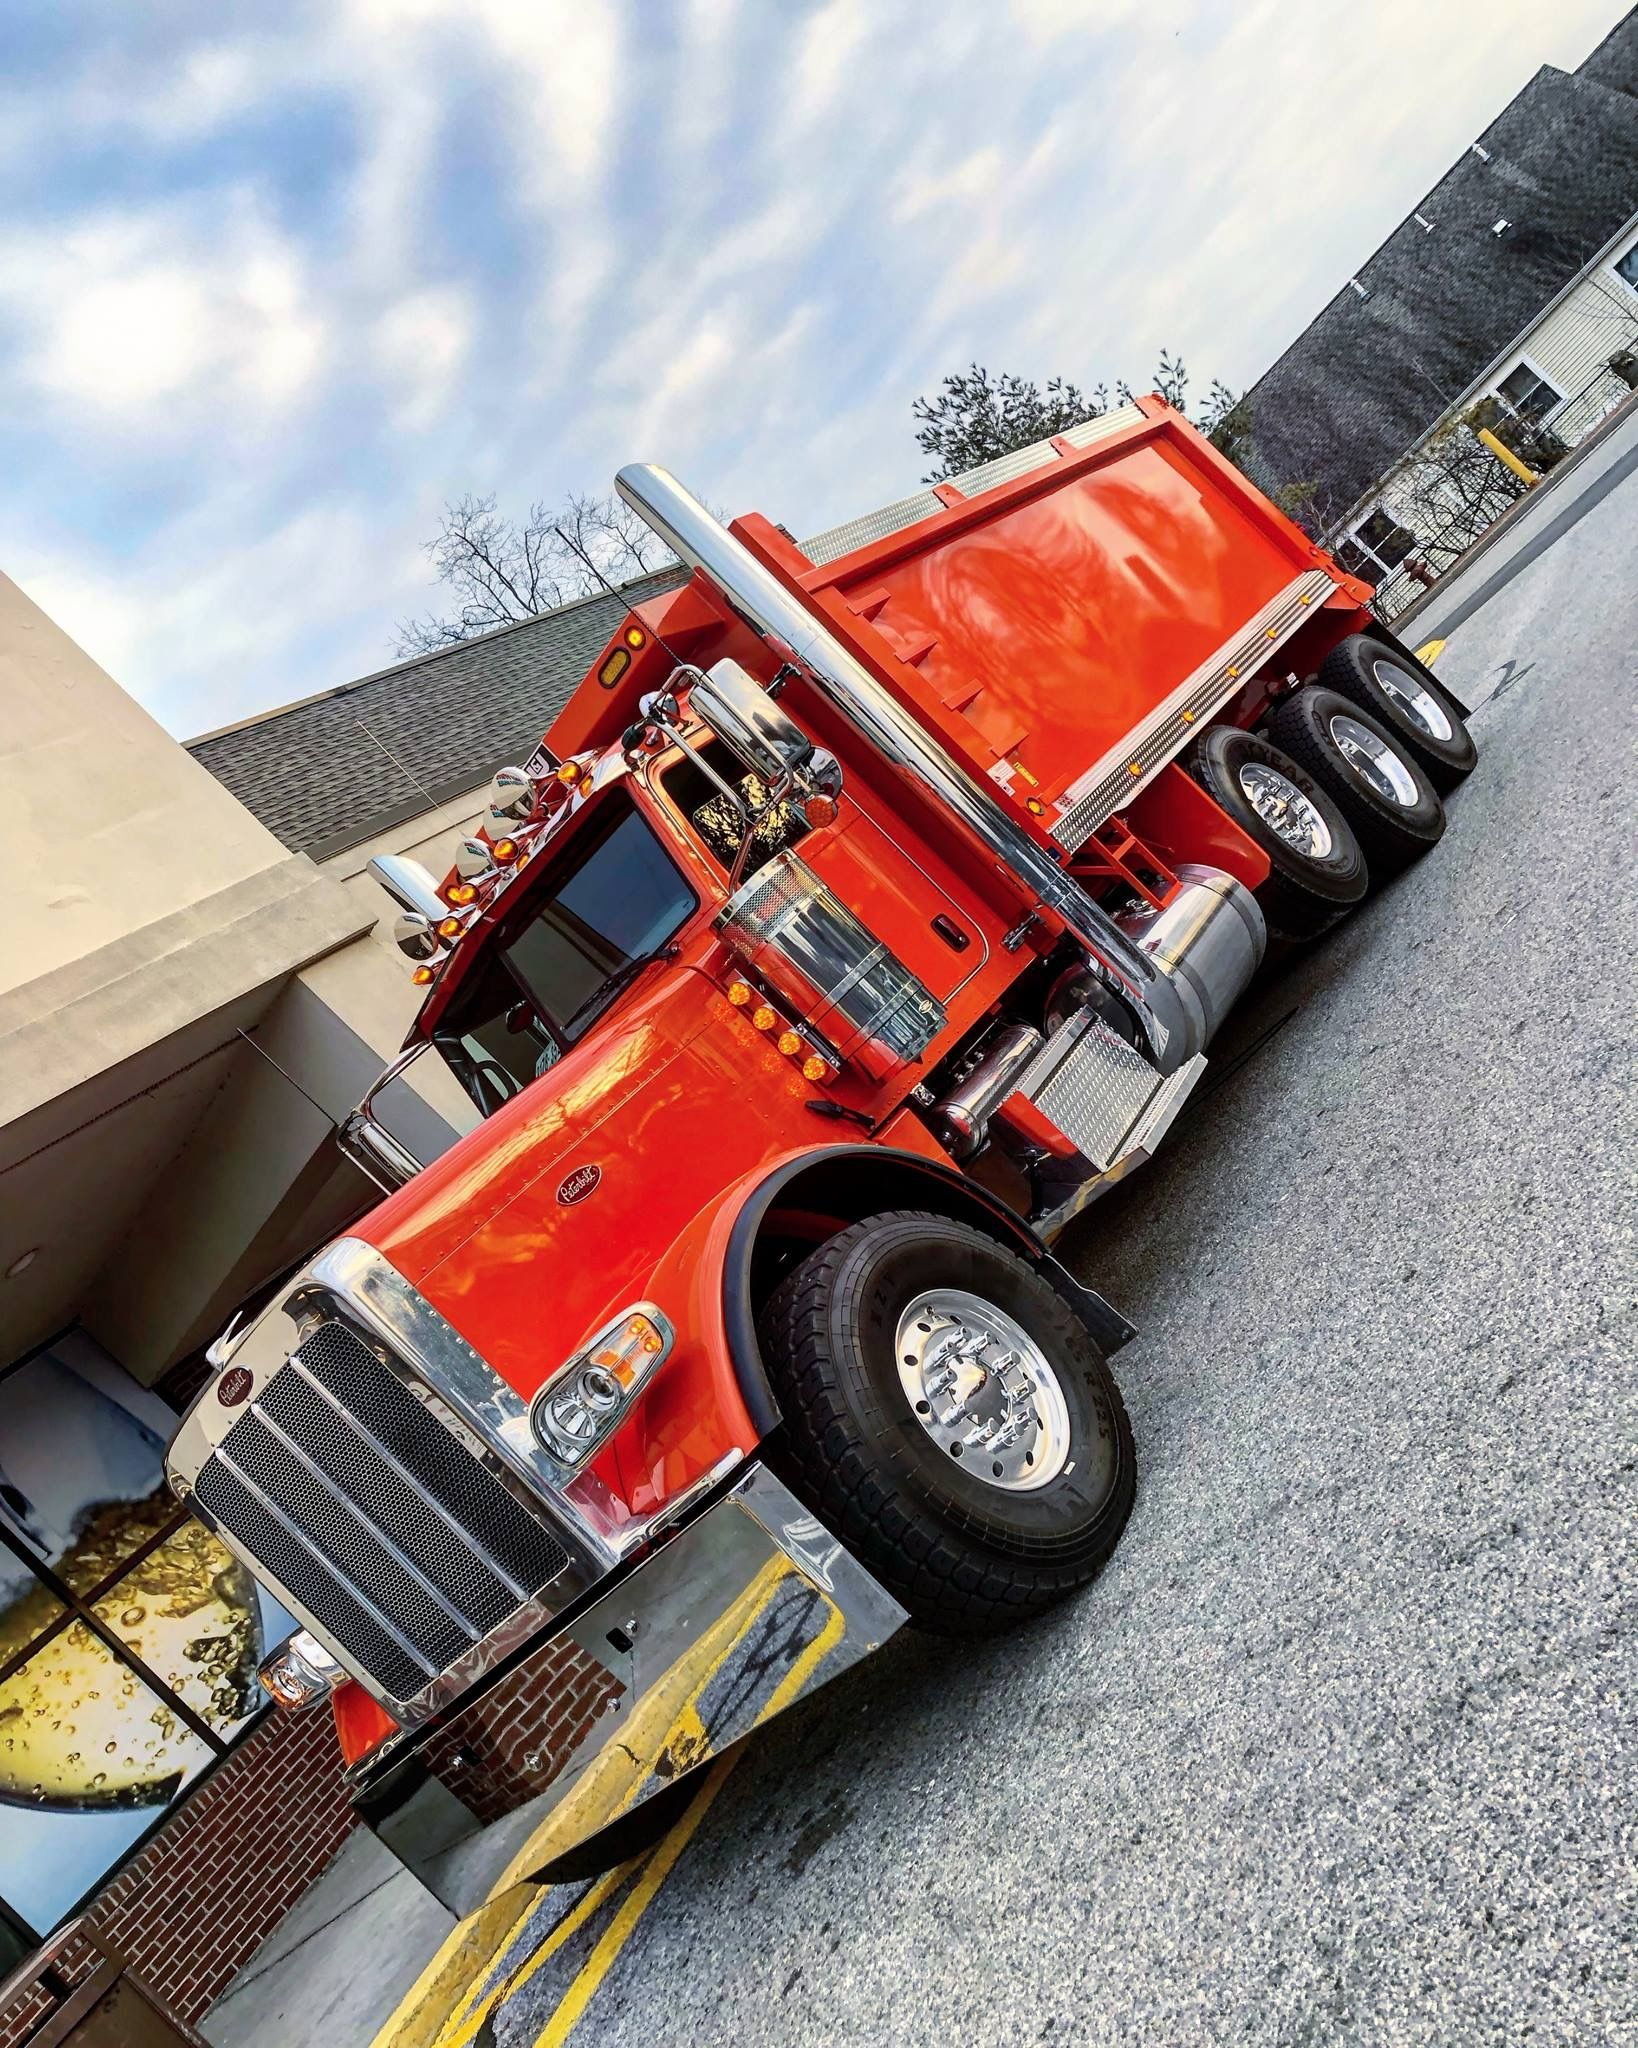 Pin by Erick Peart on galería in 2020 | Big rig trucks